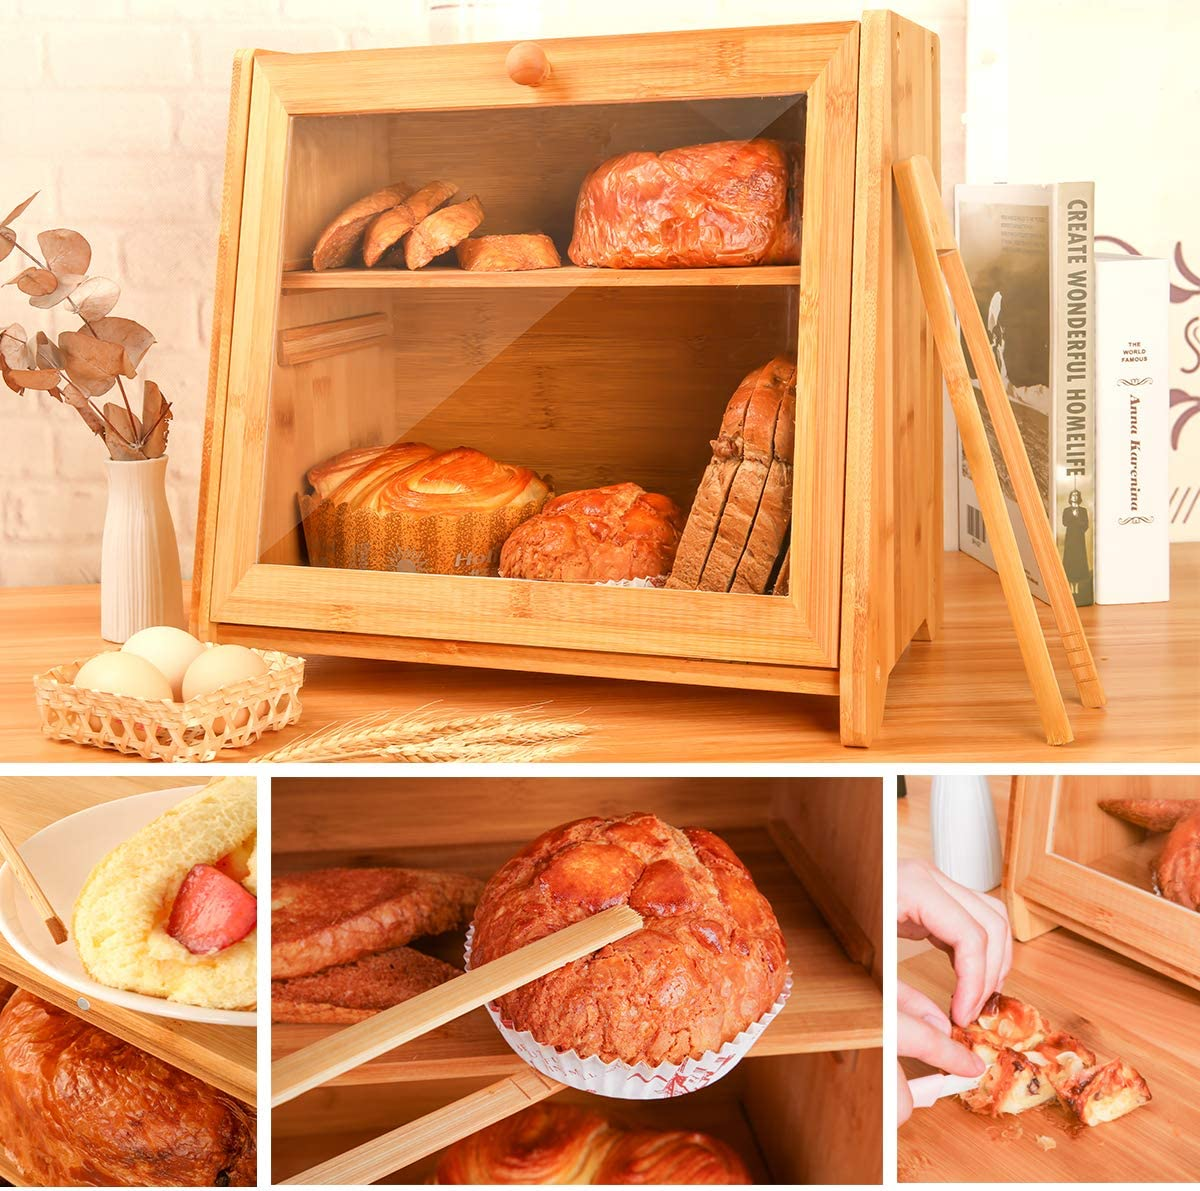 Bamboo Bread Box,2 Layer Bread Bin for Kitchen,Korean dustproof bread box for Kitchen,Large Capacity Wooden Bread Storage Holder,Countertop Bread Keeper with Toaster Tong,Self Assembly